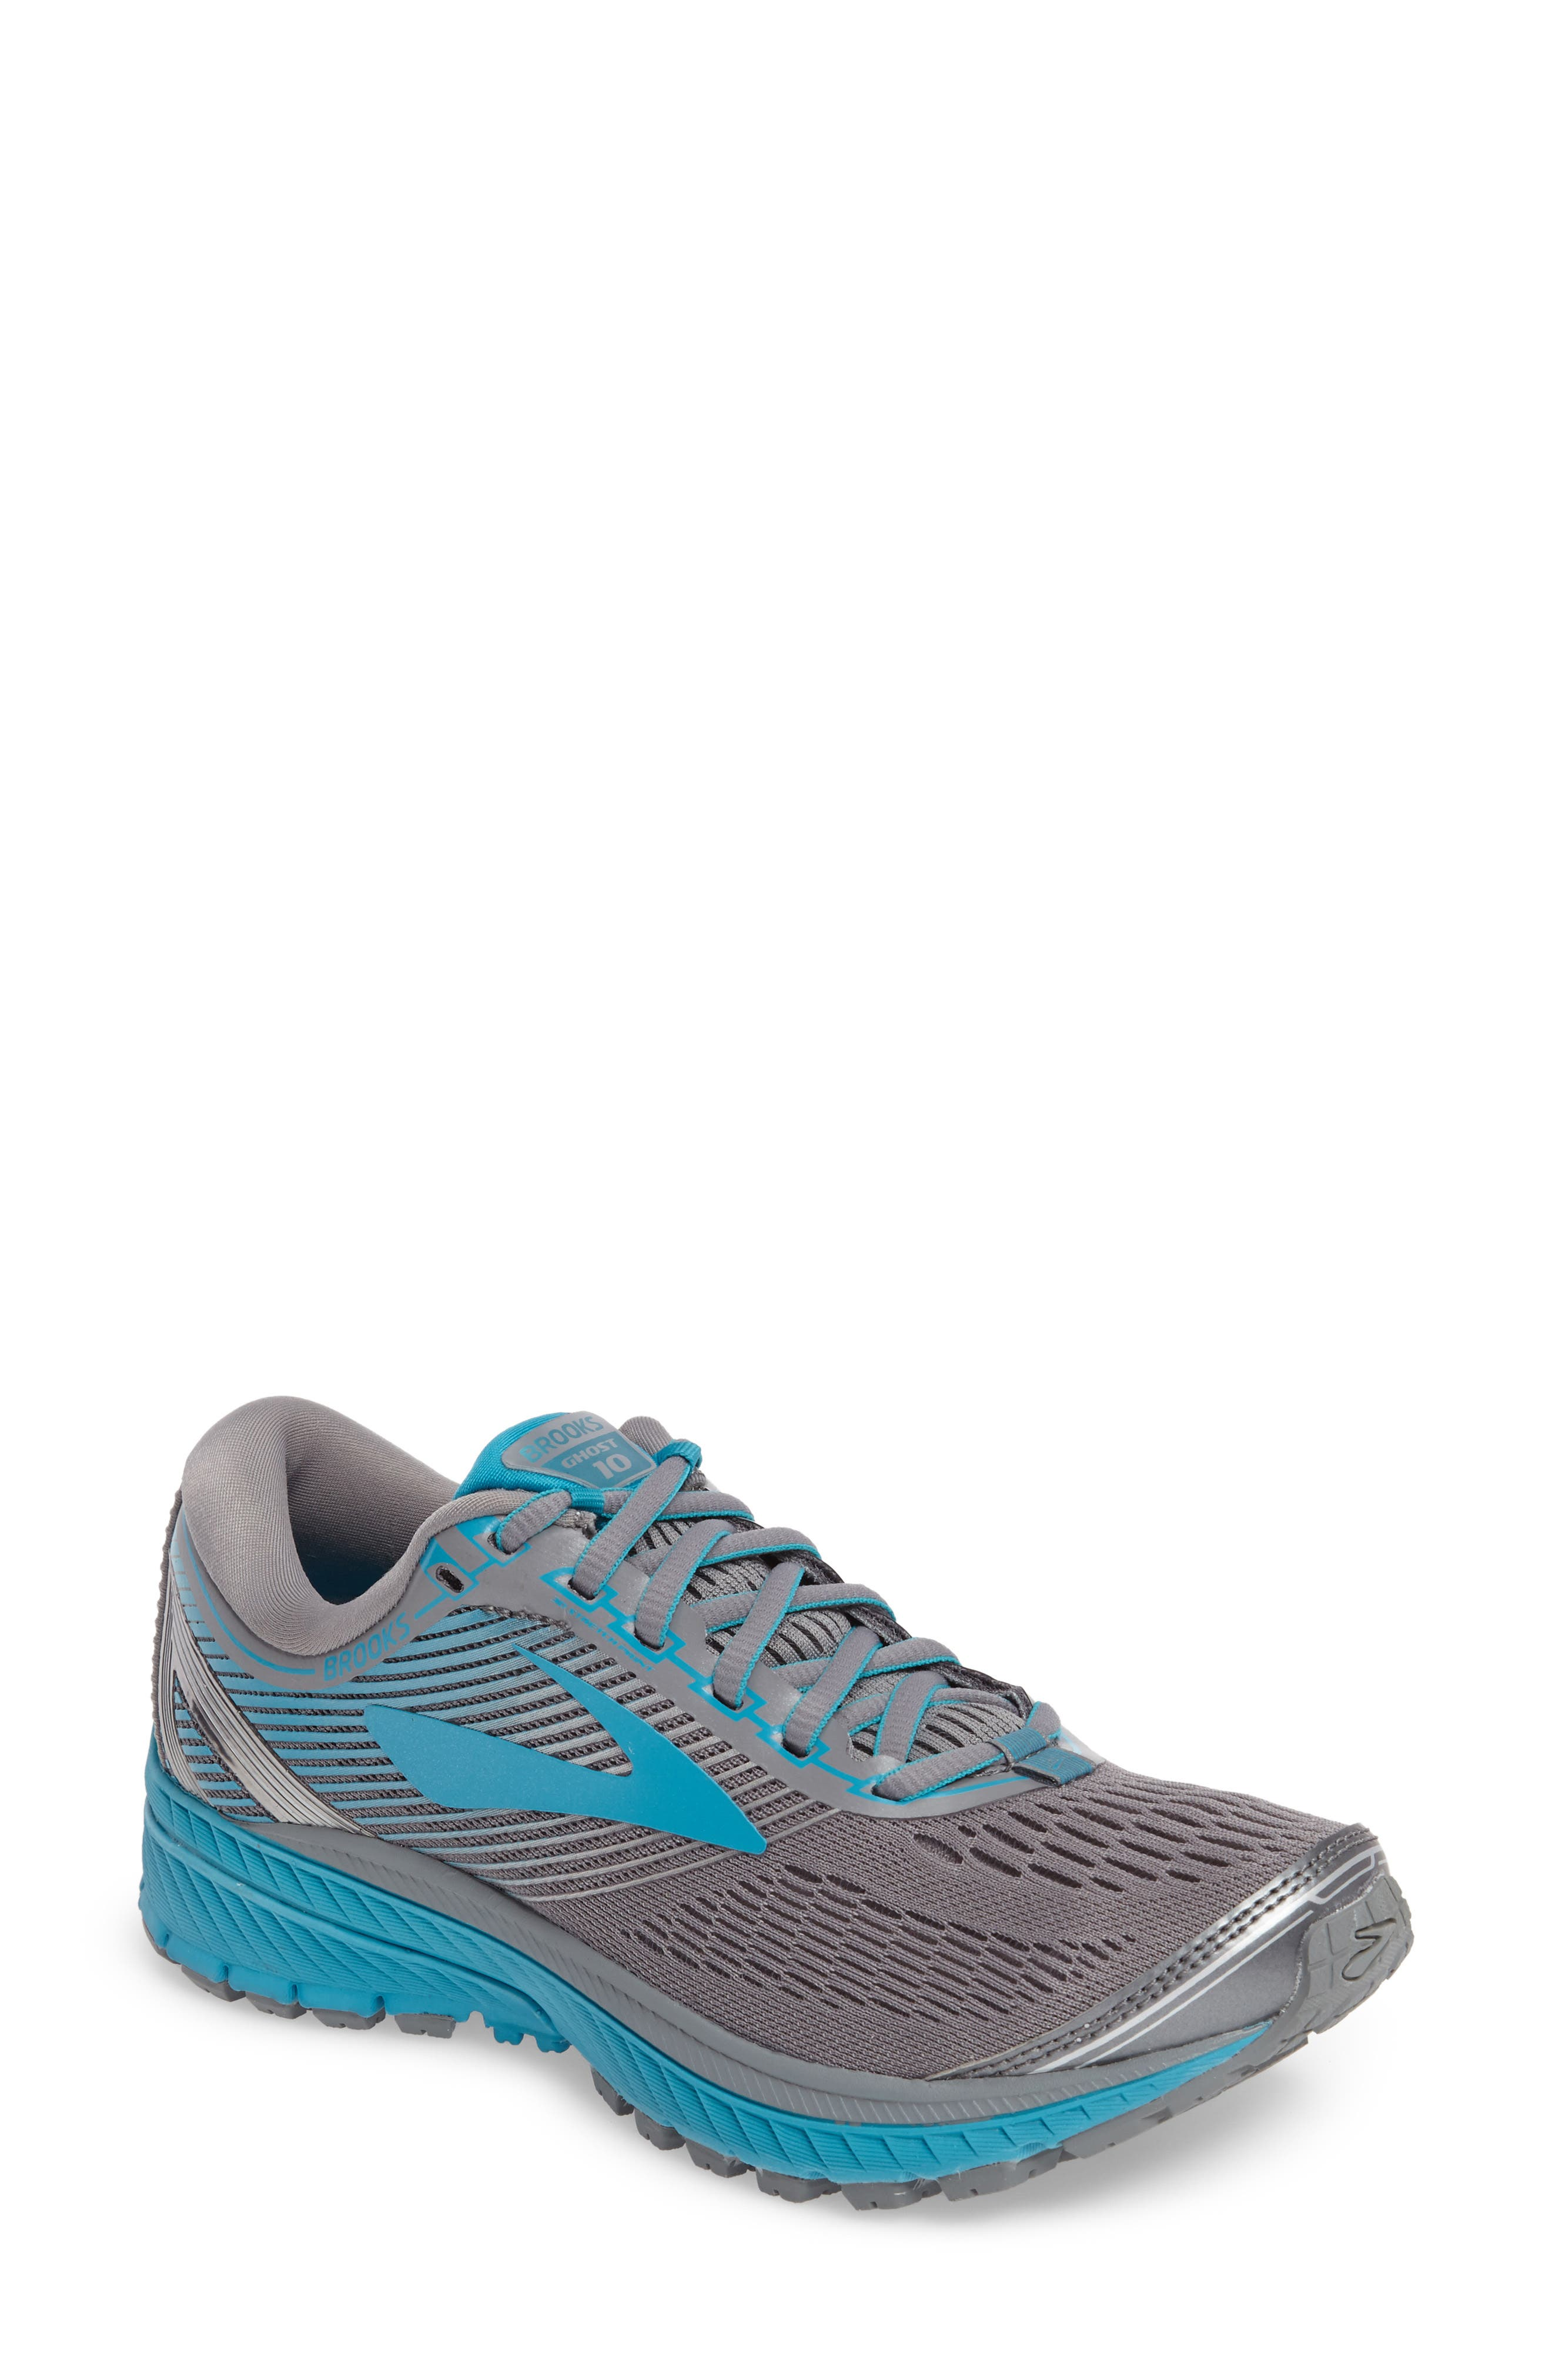 Ghost 10 Running Shoe,                             Main thumbnail 1, color,                             Primer Grey/ Teal/ Silver